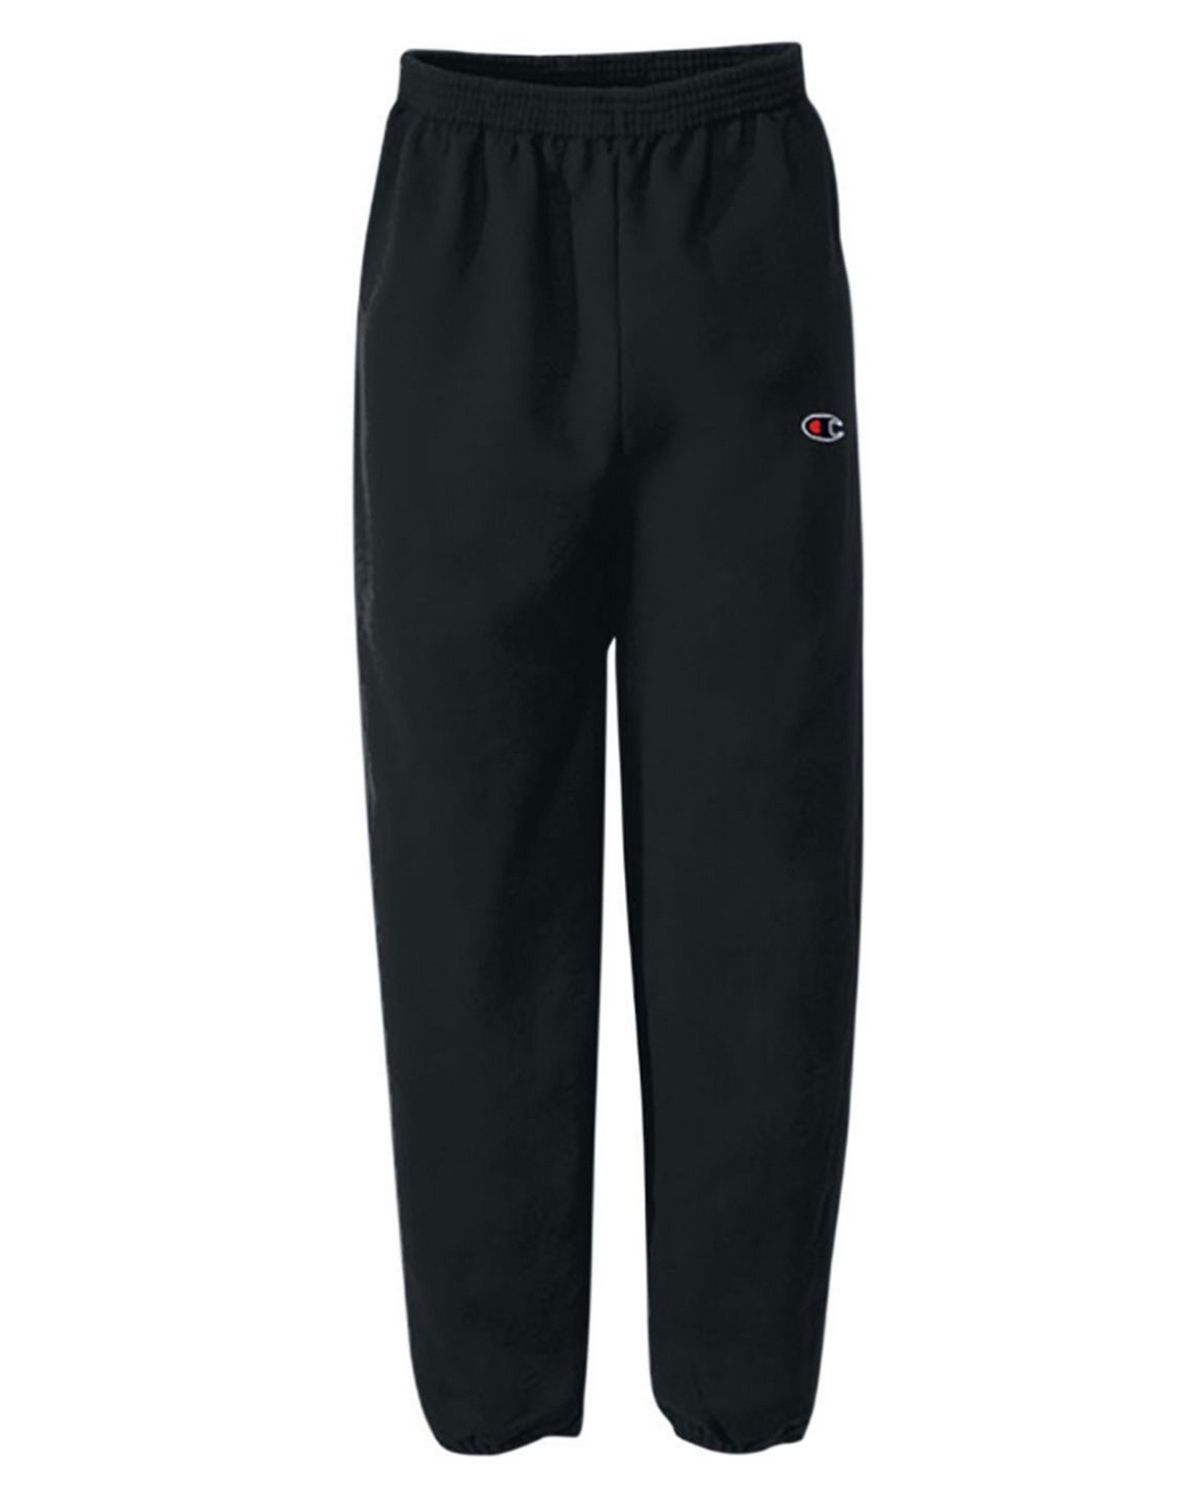 Champion P790 Youth Eco Fleece Bb Pant - Scarlet - XL P790